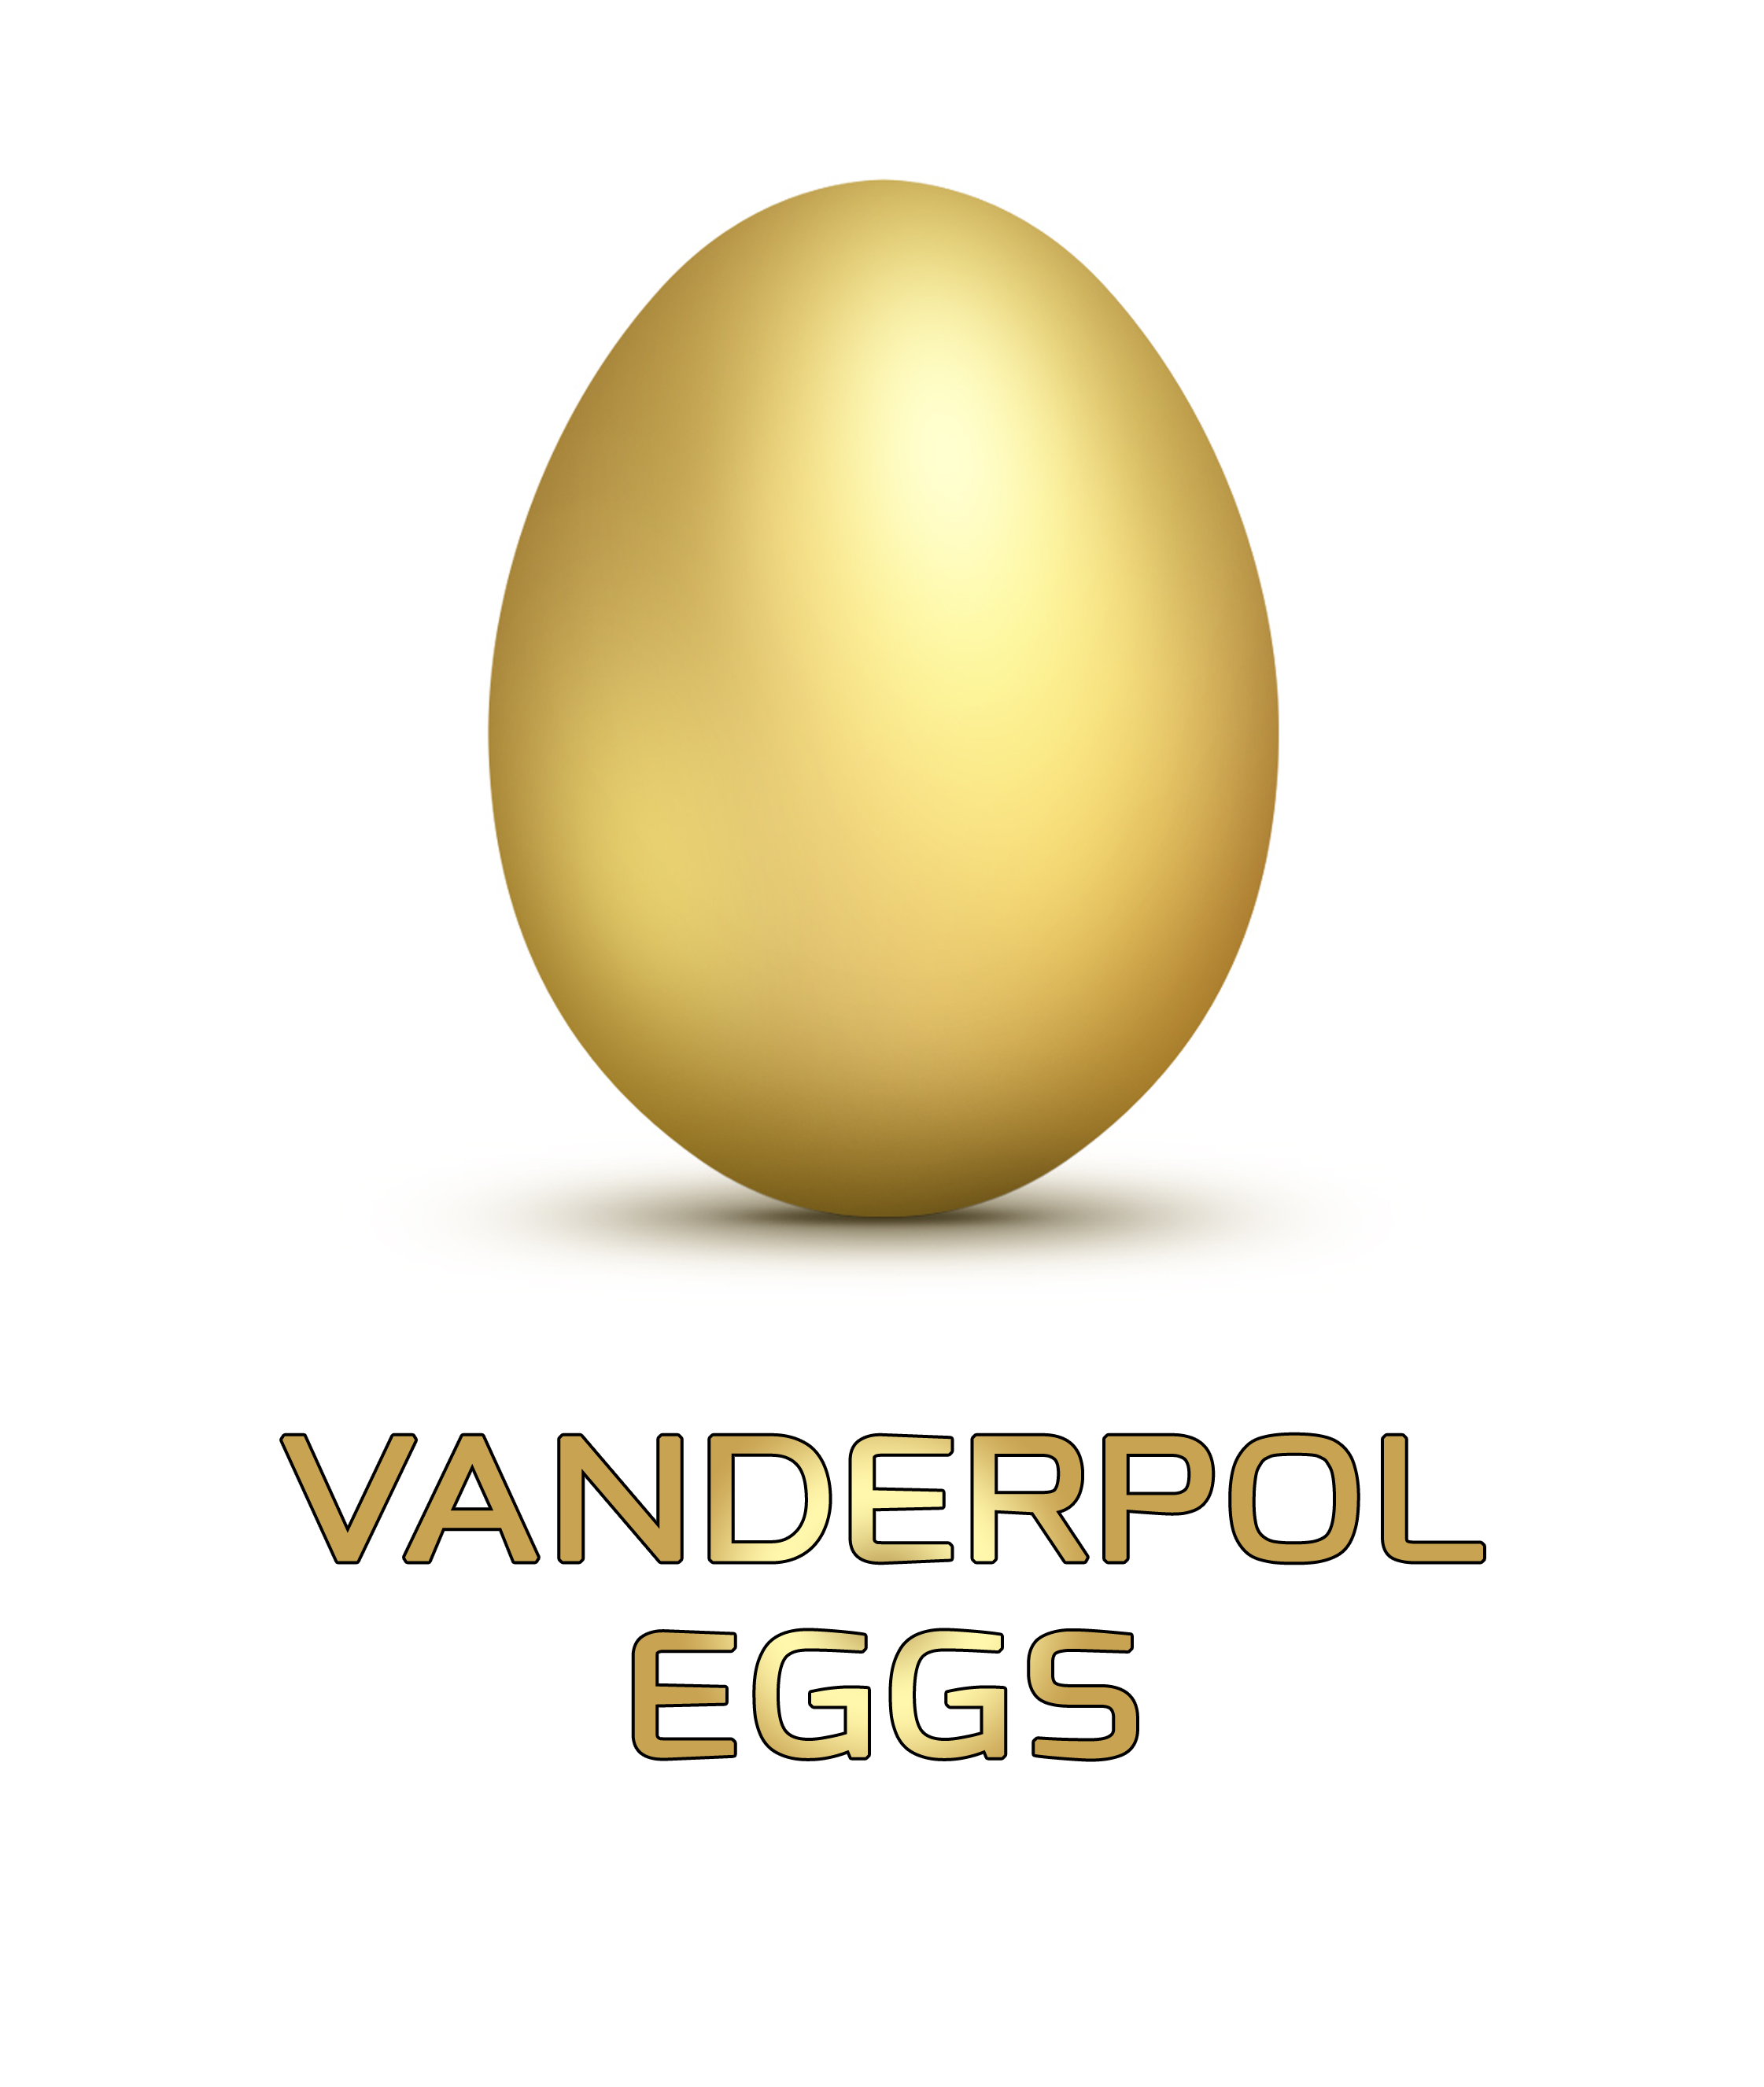 Logo Design by Moez Oueslati - Entry No. 58 in the Logo Design Contest Creative Logo Design for Vanderpol Food Group.